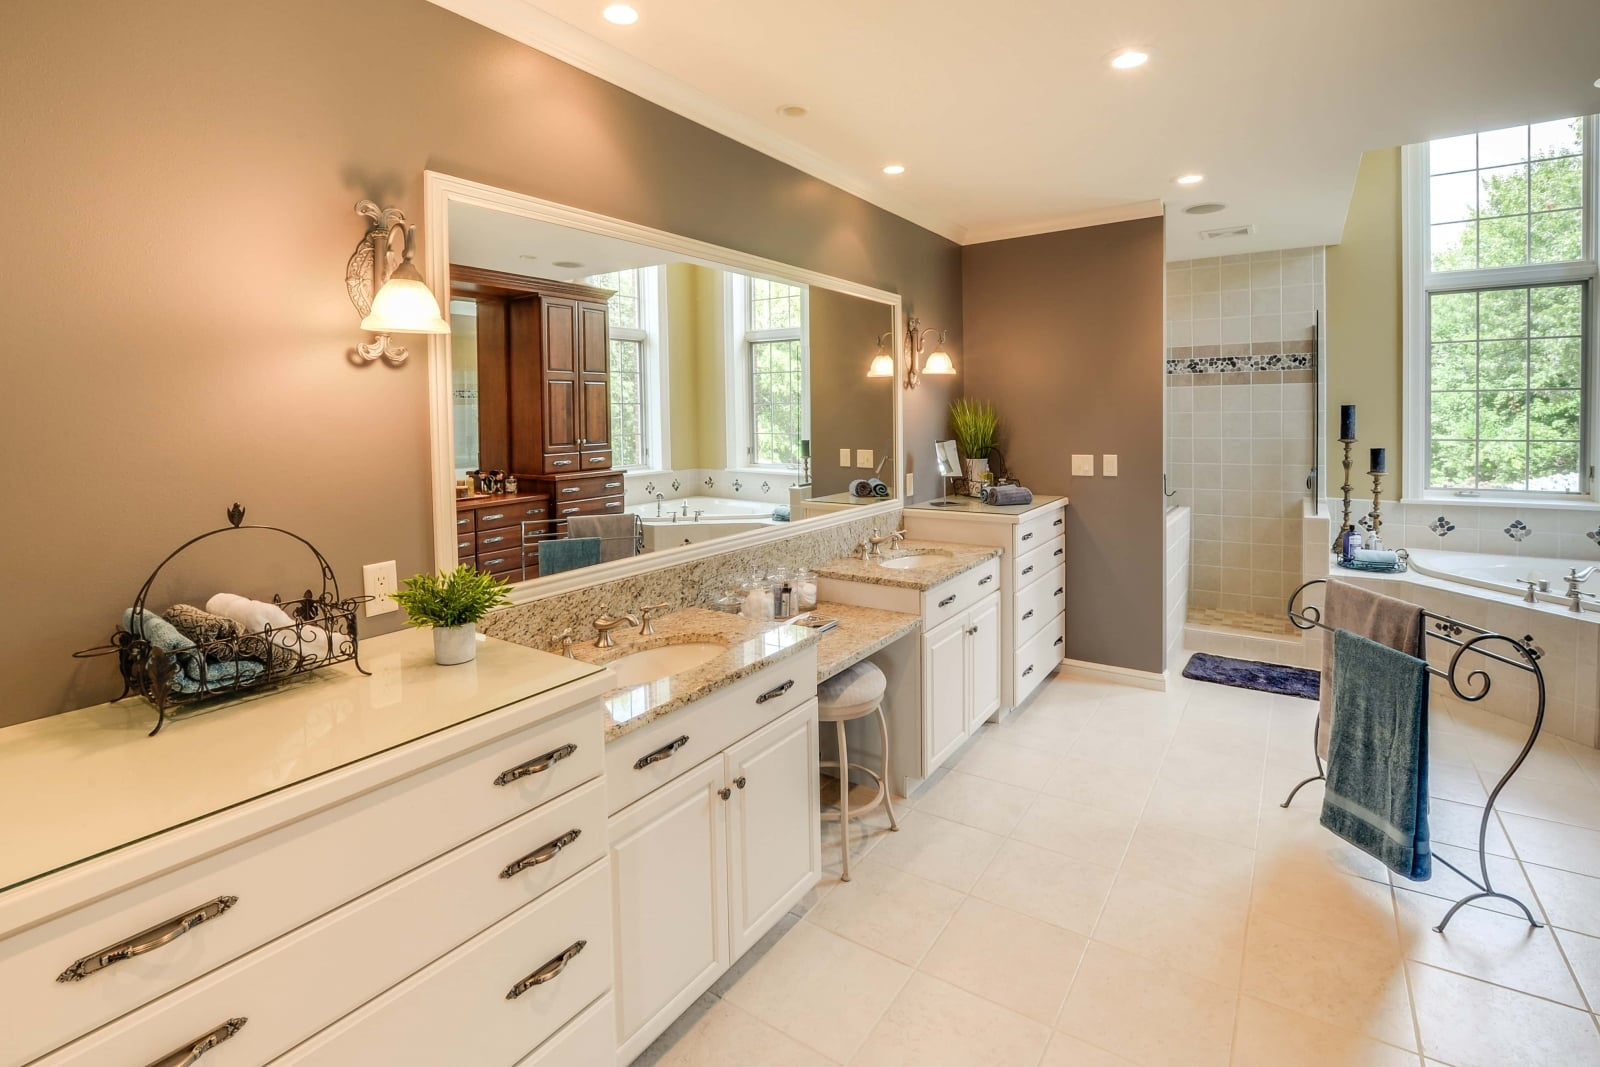 Popular New Construction 3BR2ba Twinhome On Eau Claires West Side  Beautiful  This 3 Bedroom, 2 Bath Home Features An Open Floor Plan, Stainless Steel Appliances, And Custom Cabinets The Flooring, 3panel Doors, And Craftsman Trim Are